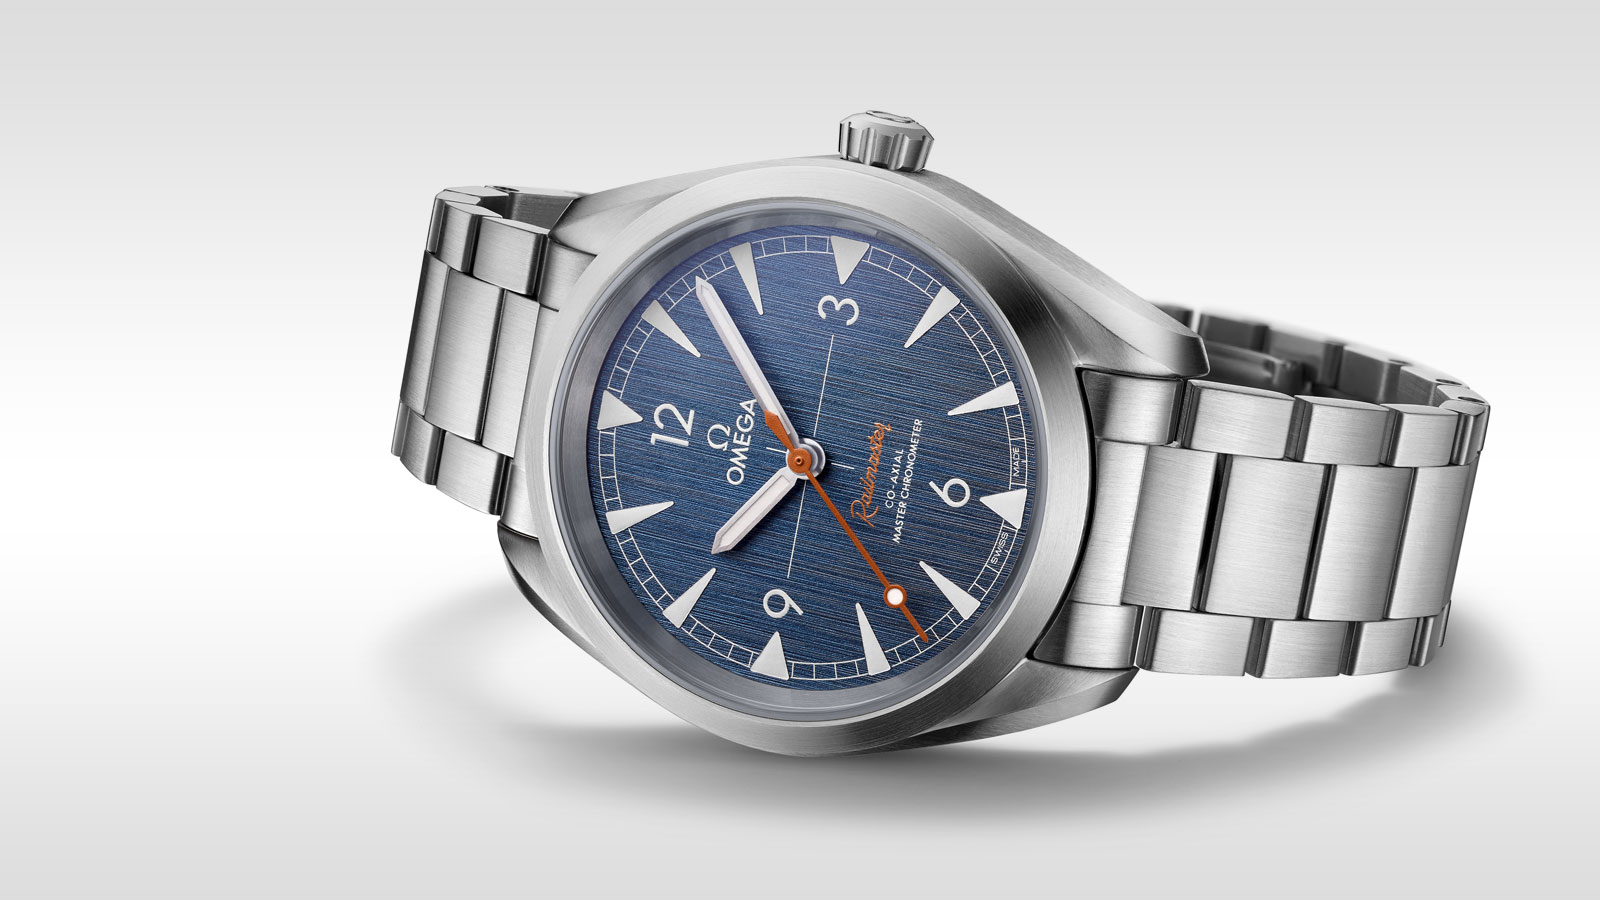 Seamaster Railmaster Railmaster Omega Co‑Axial Master Chronometer 40 mm - 220.10.40.20.03.001 - Просмотреть 1